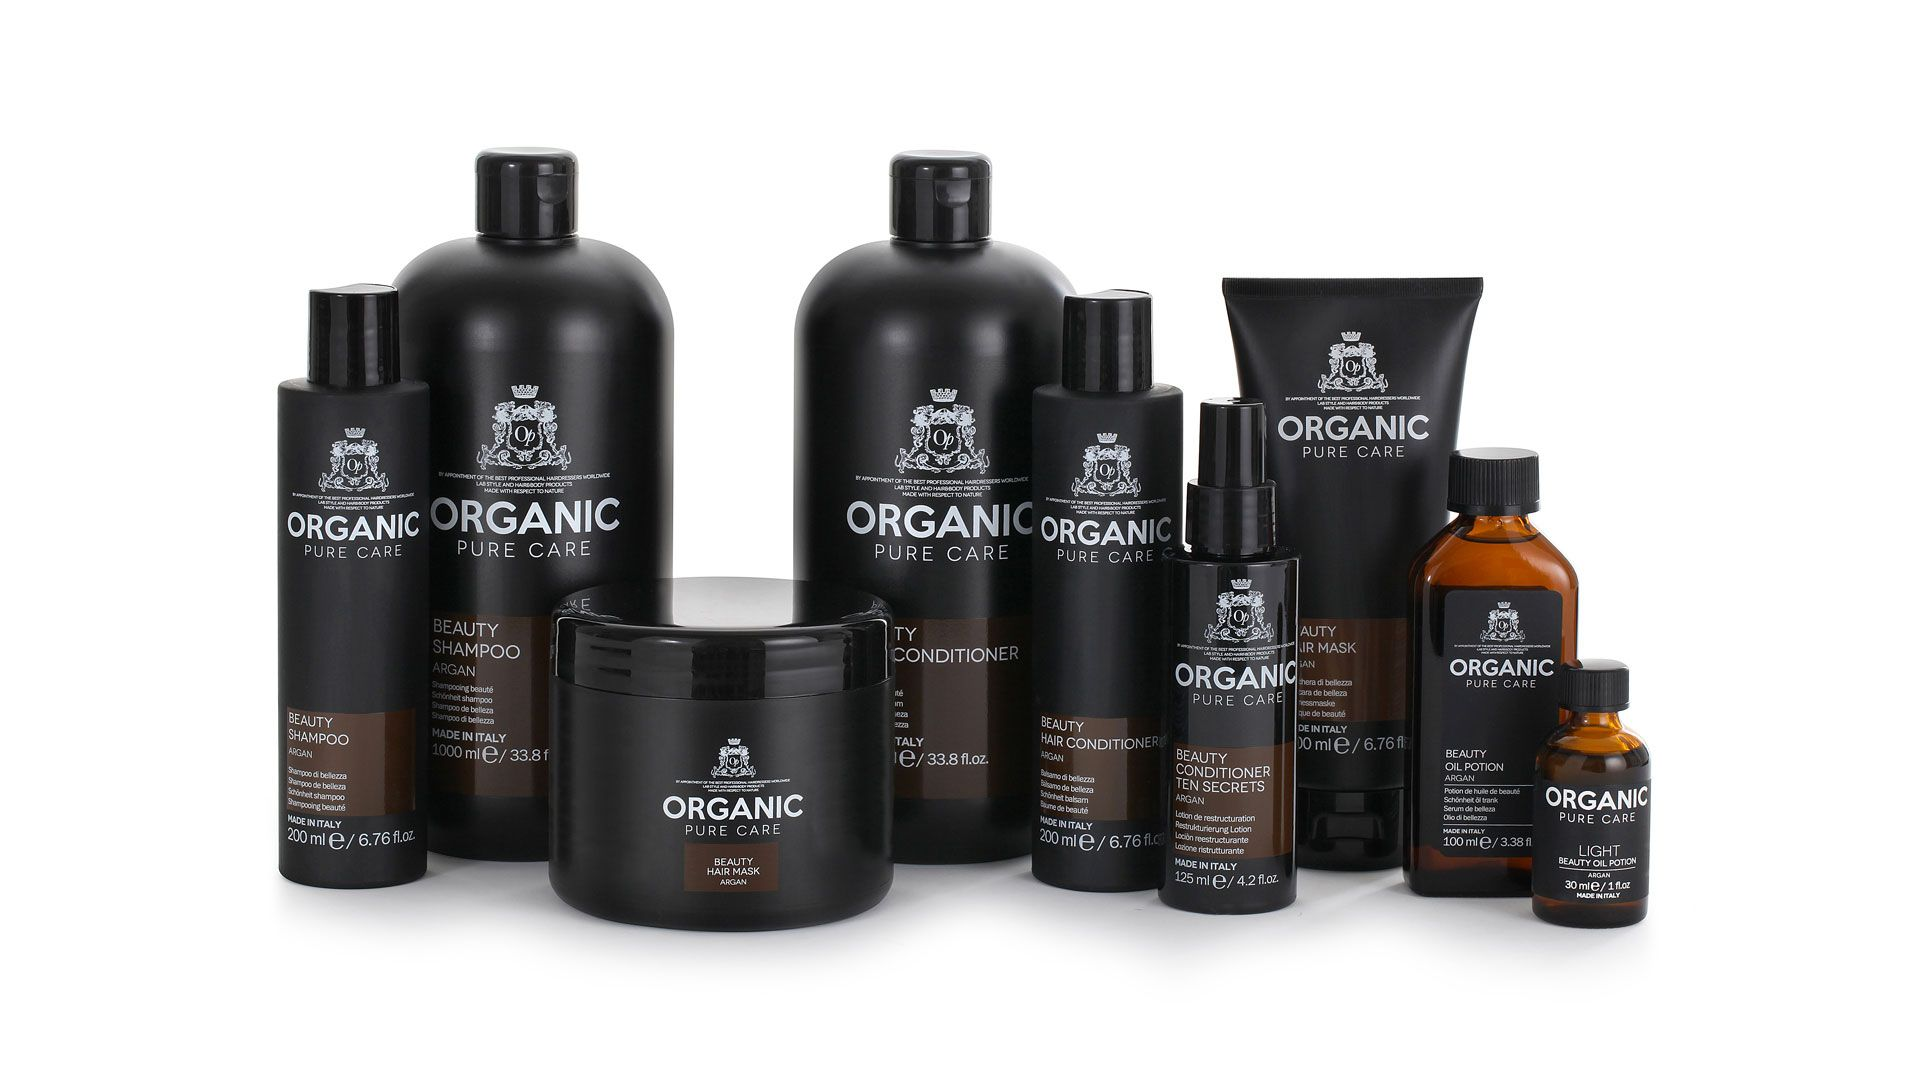 Other Product to Try - Argan